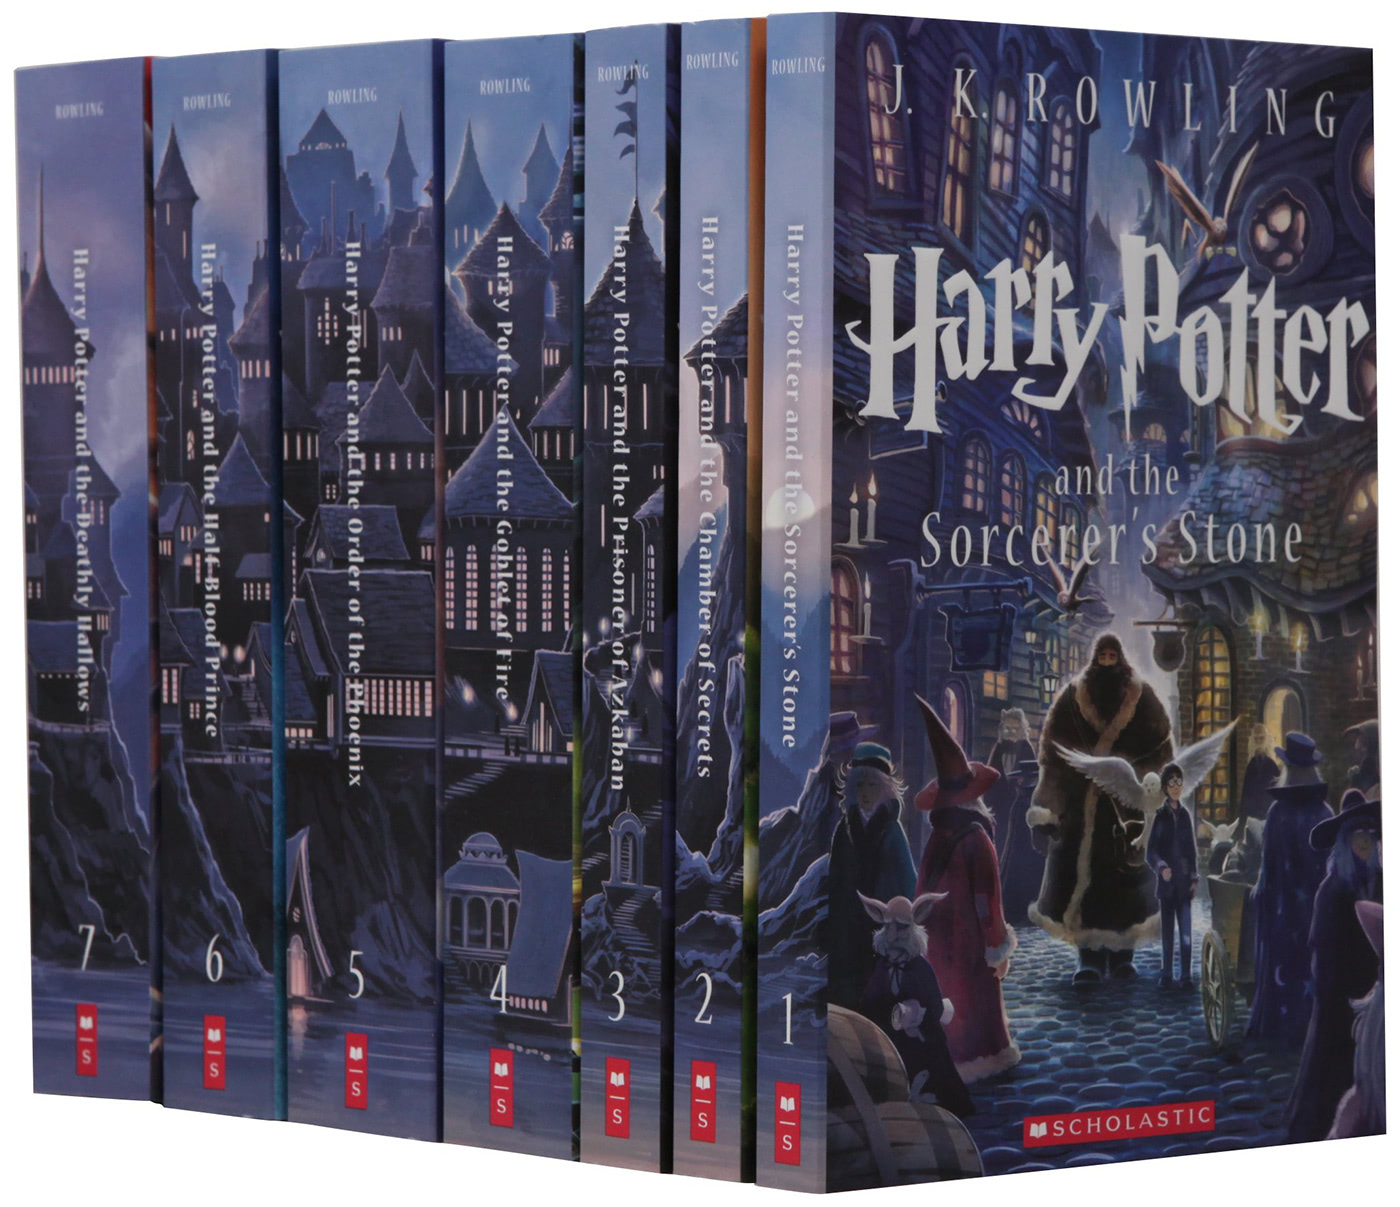 Scholastic 'Harry Potter' boxed set (US 2013 editions)